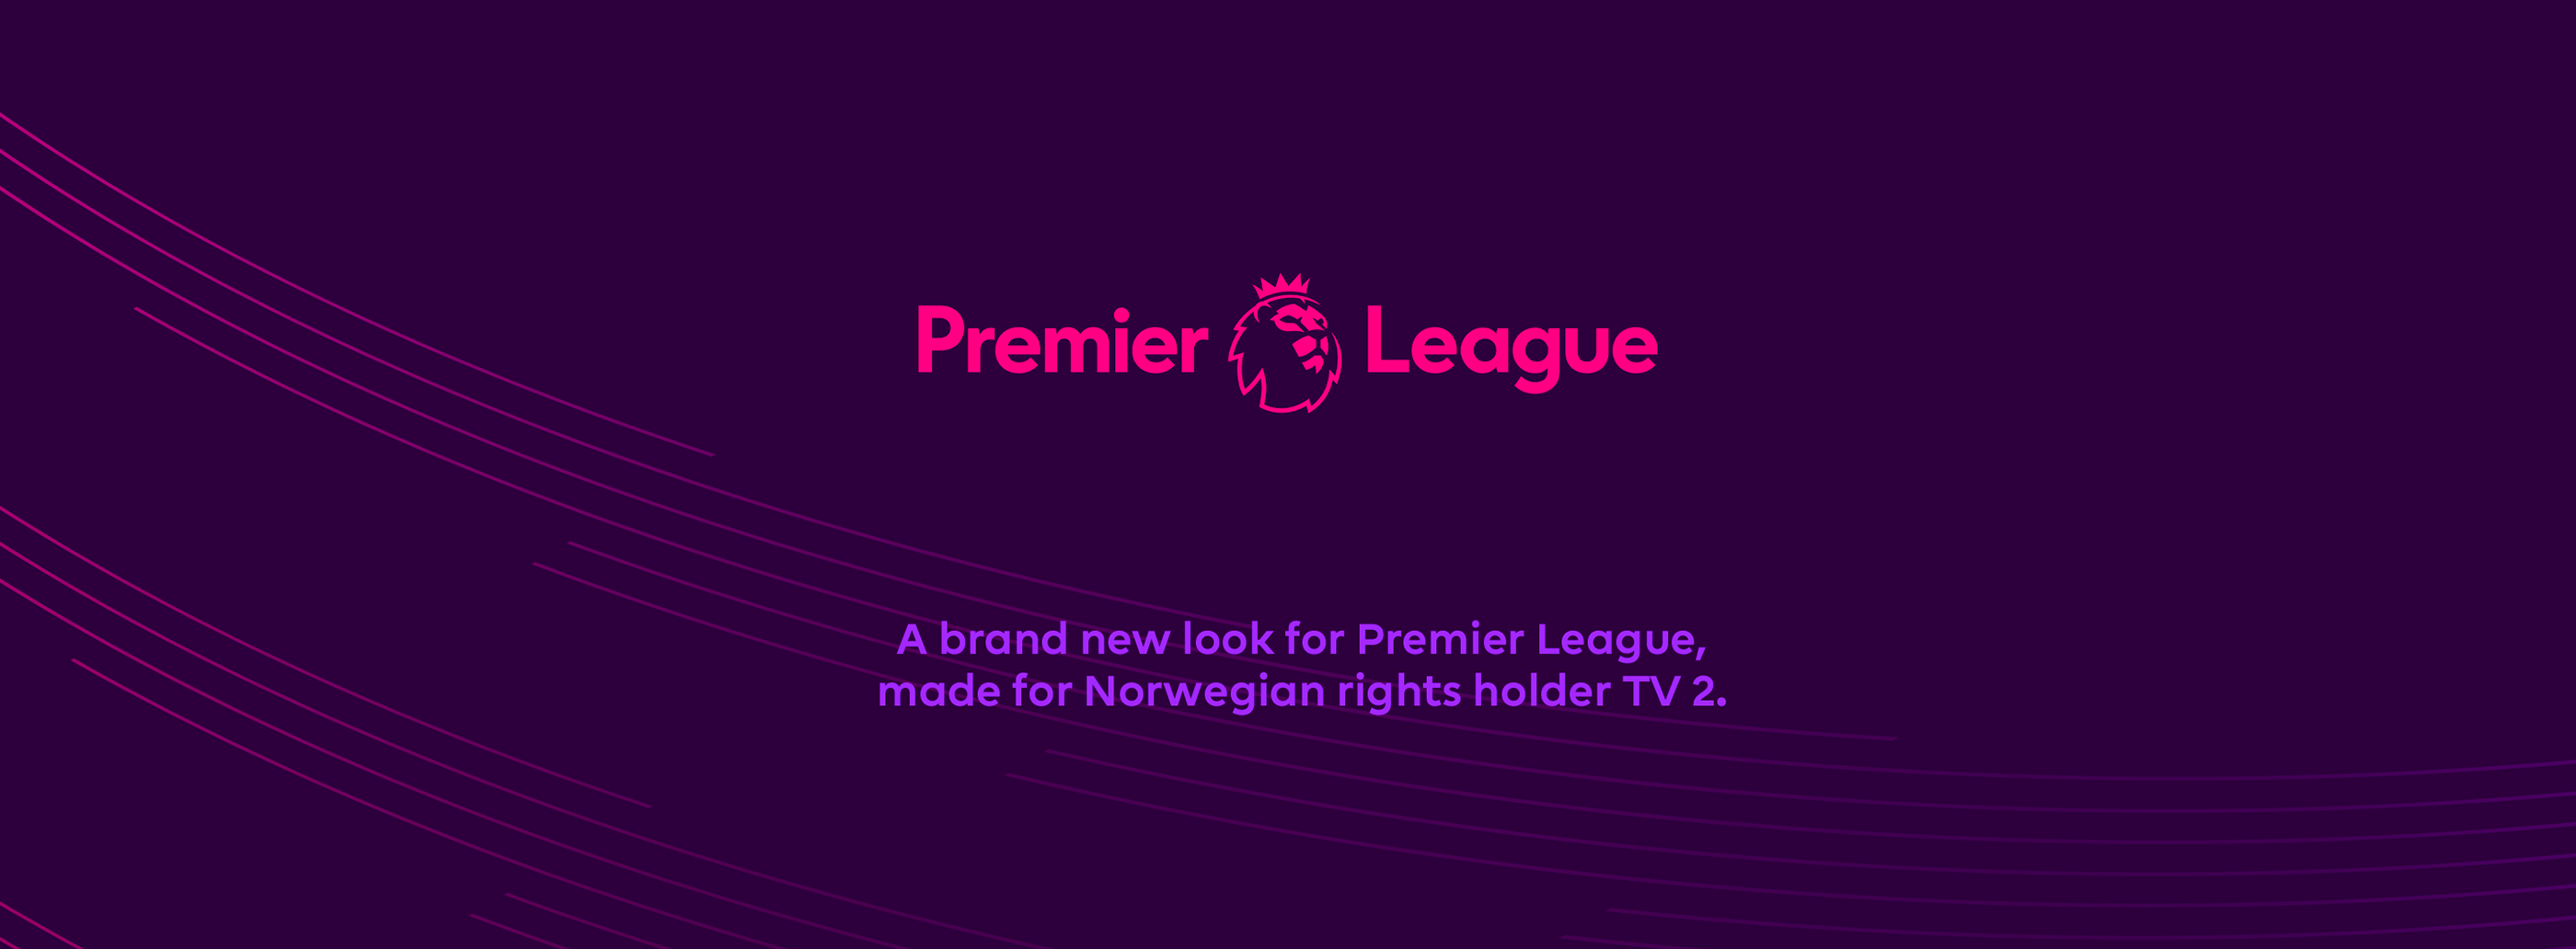 For all the latest Premier League news